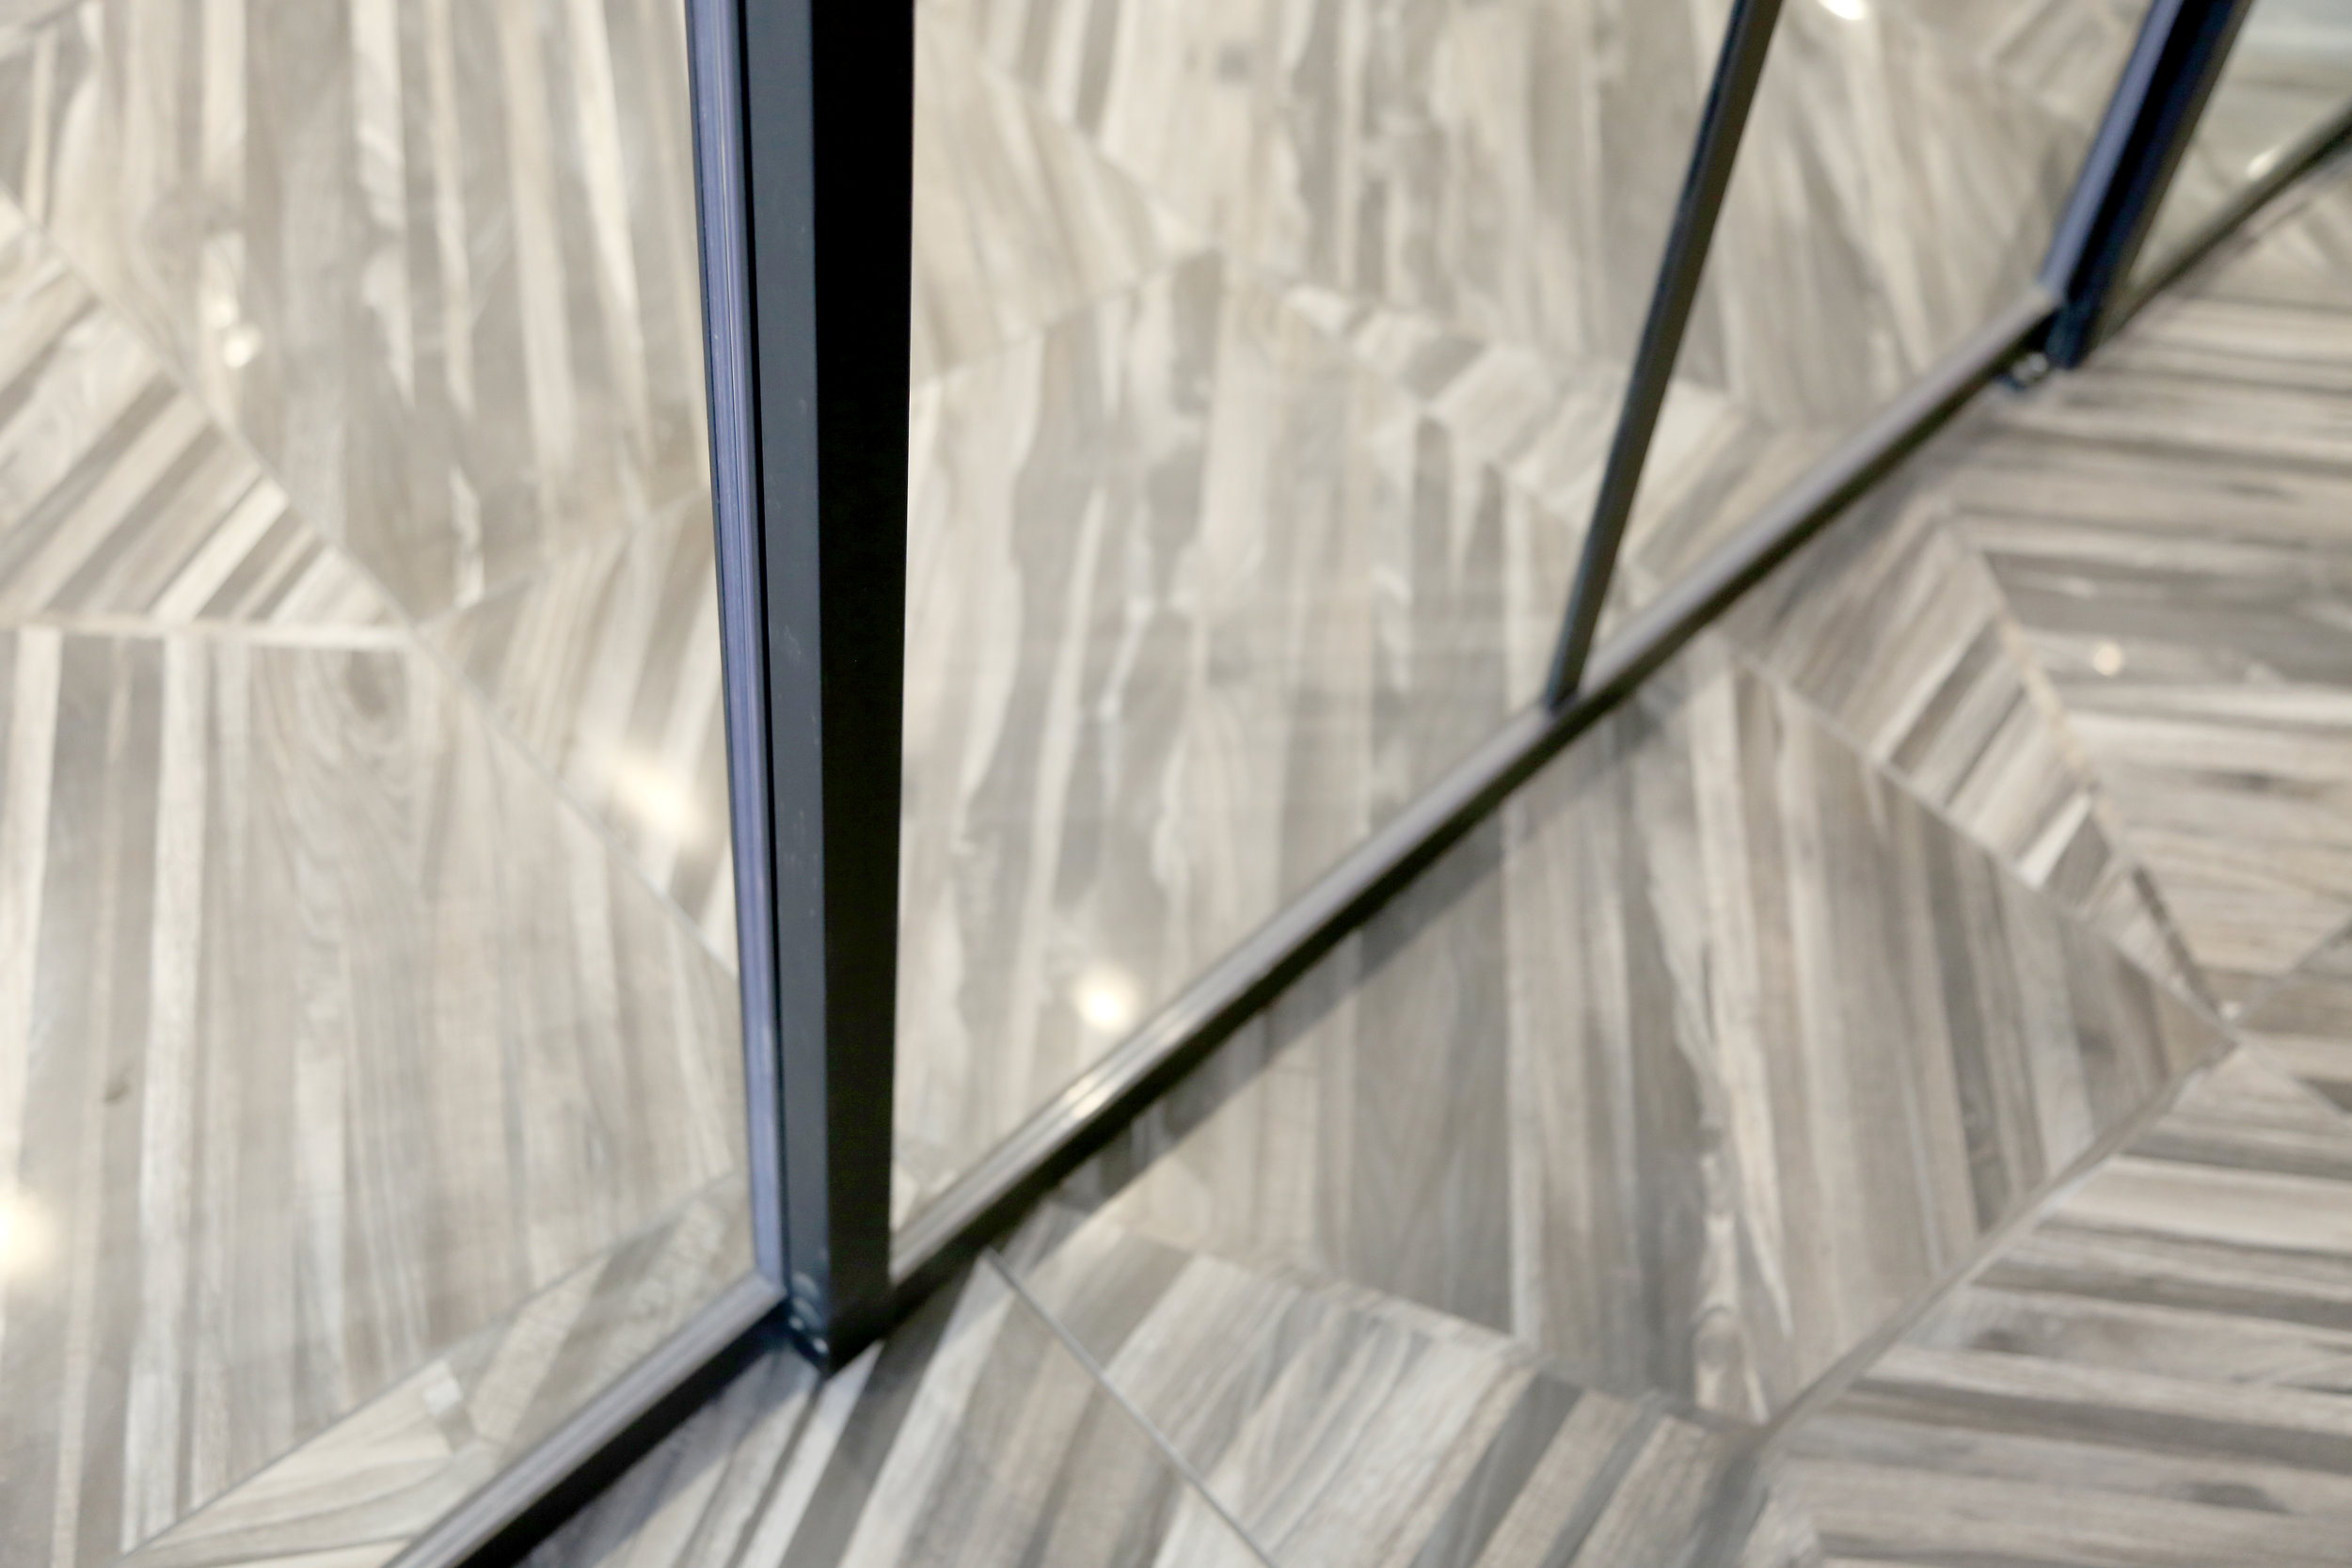 Lobby Telescoping Glass Wall Panels Black Aluminum Narrow Profile - Spaceworks AI.jpg